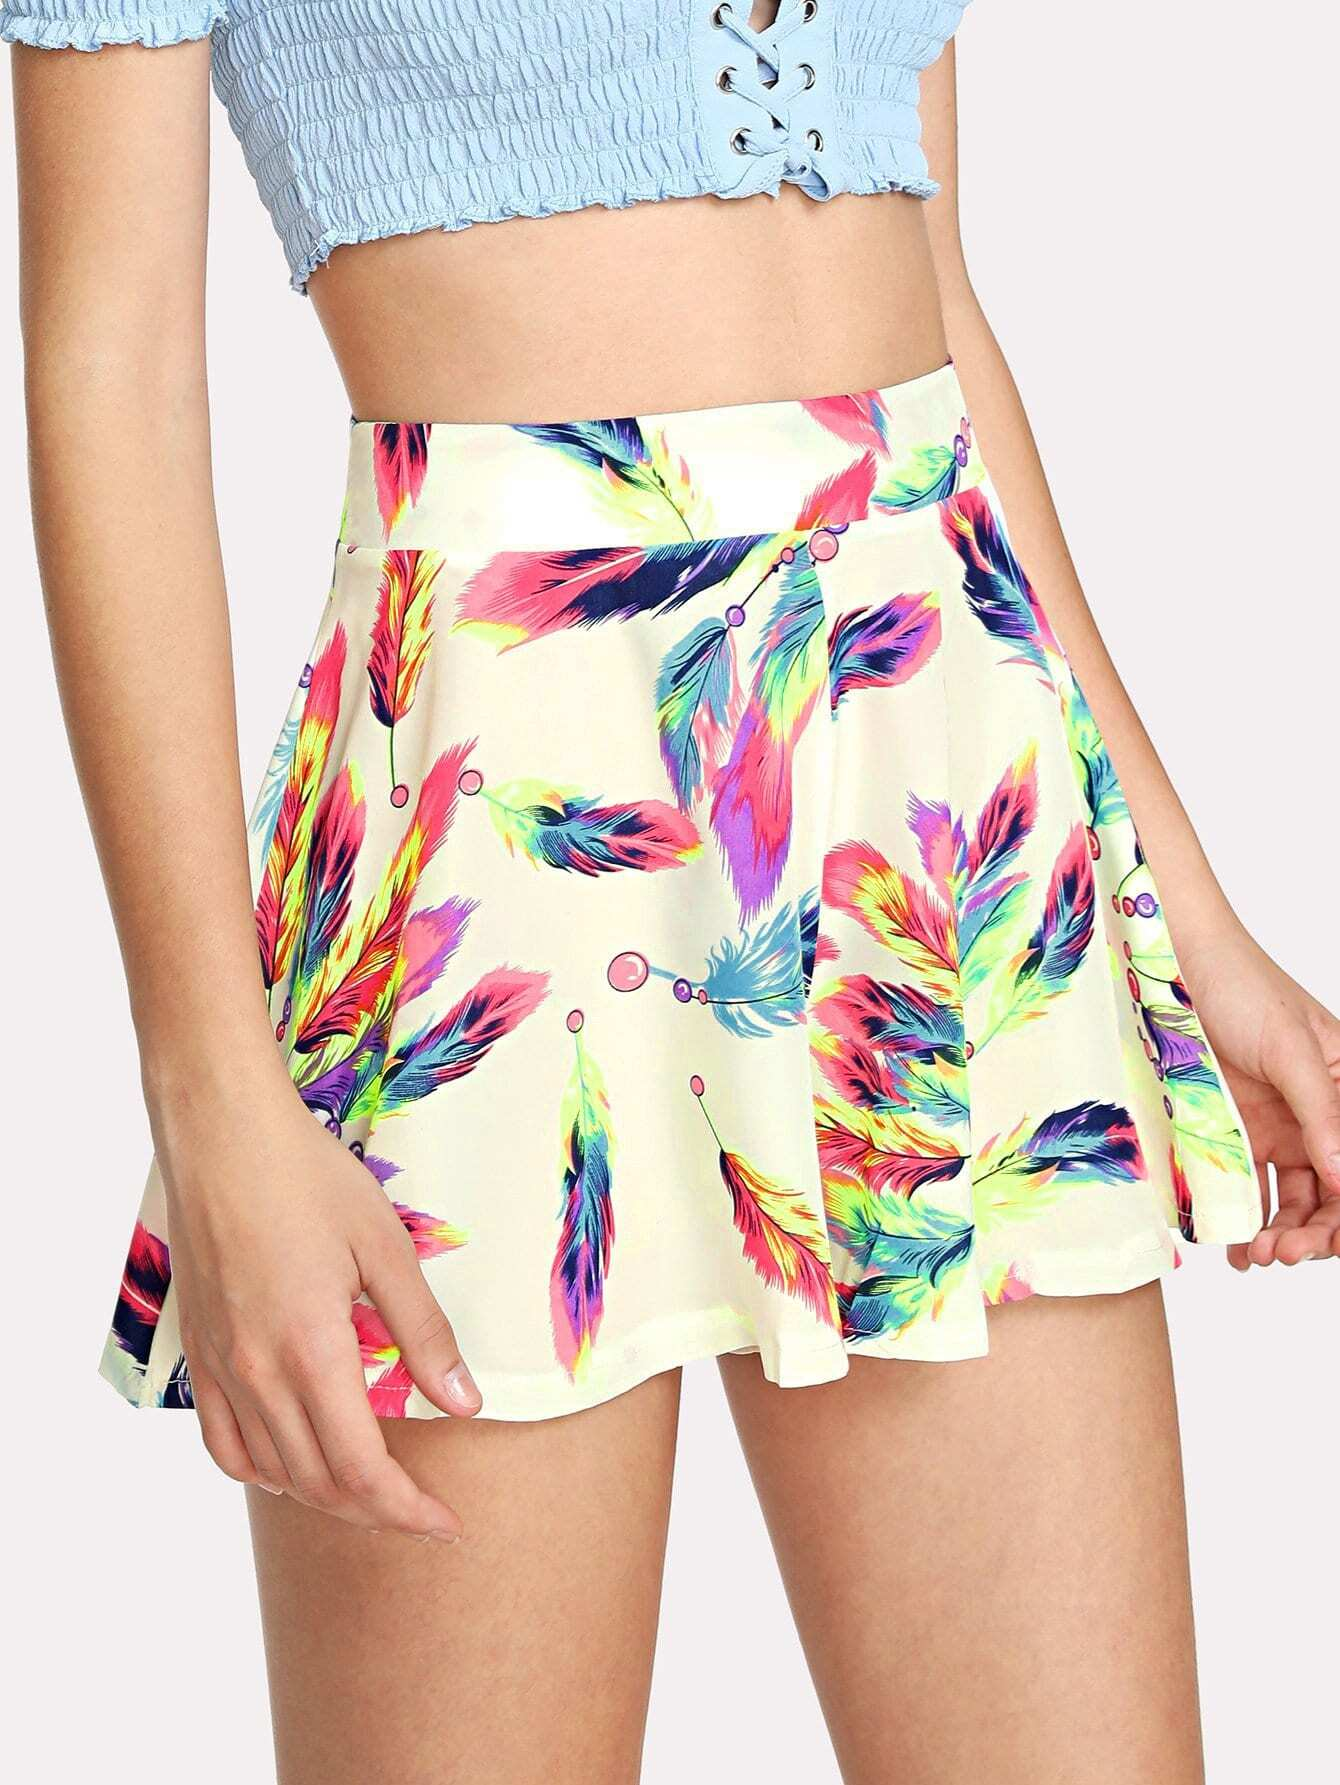 Feather Print Zip Up Back Shorts lace up front zip back design shorts